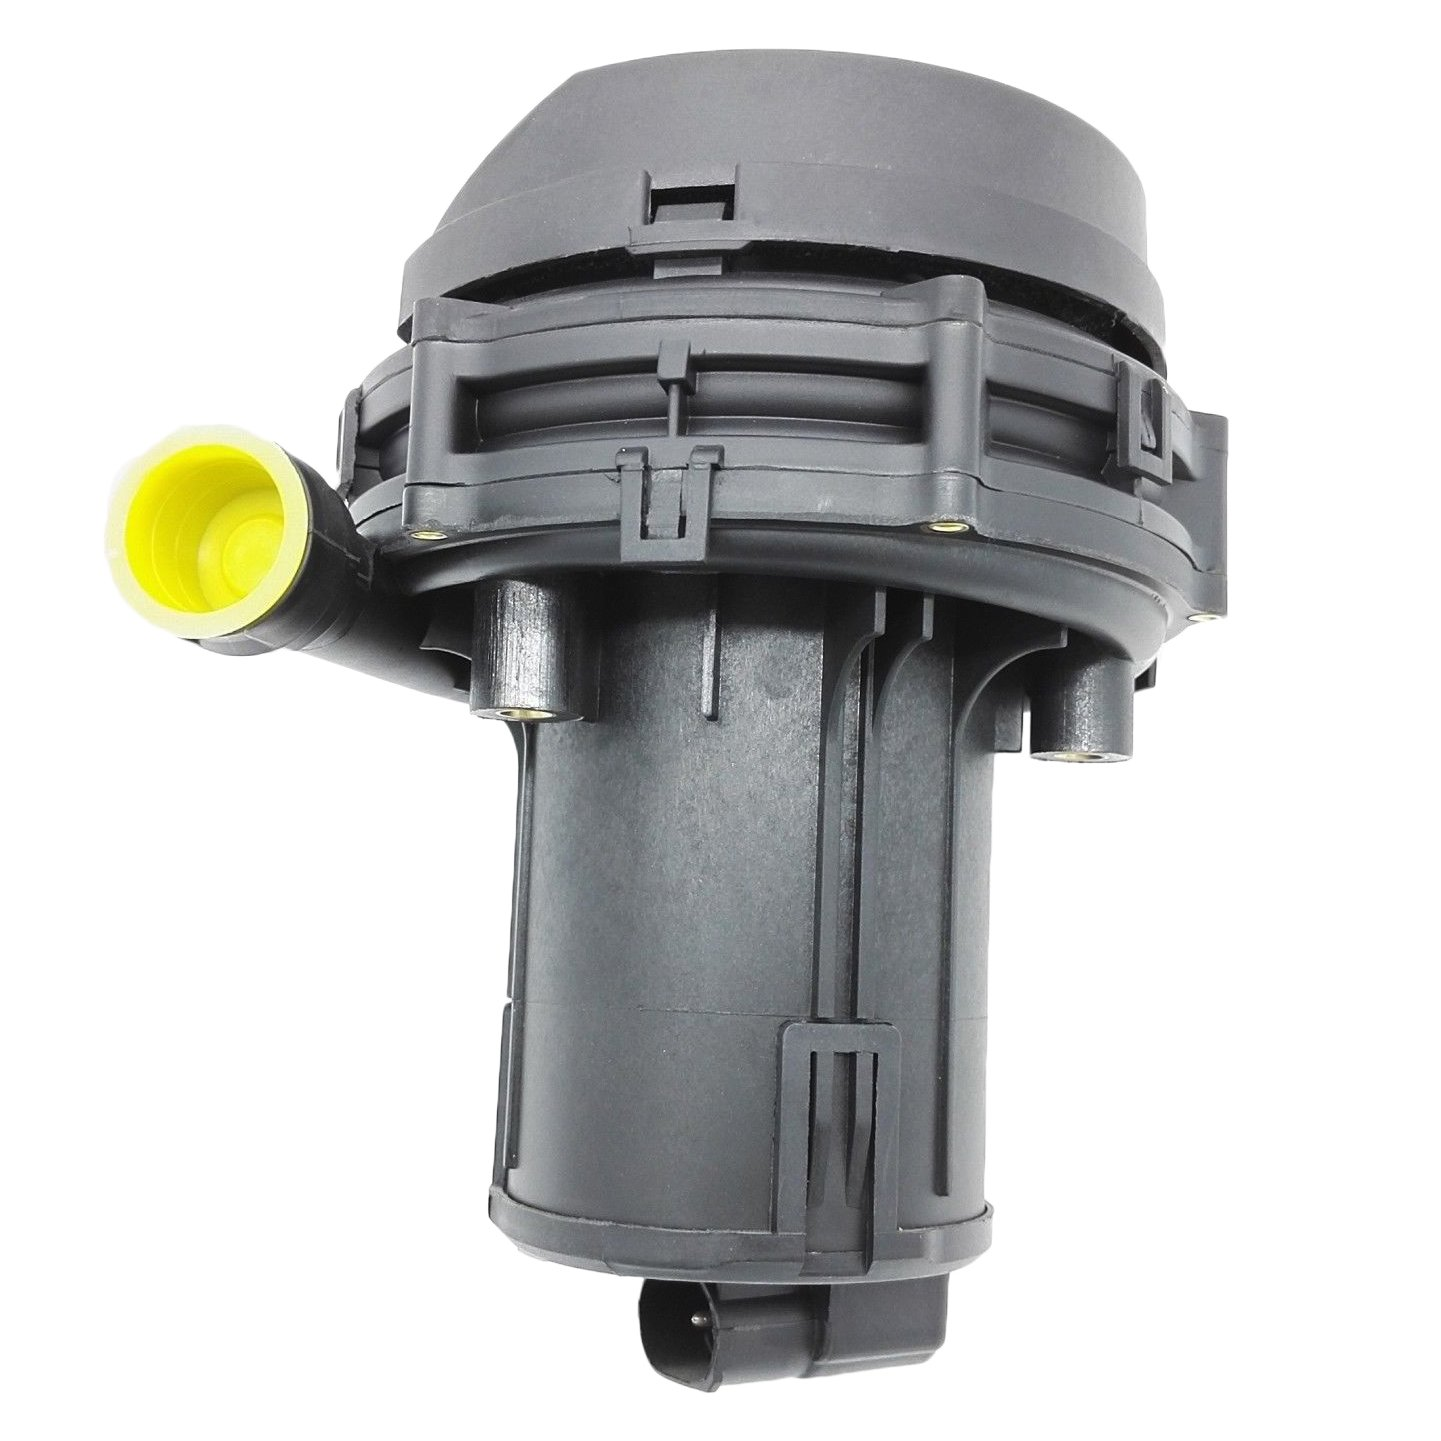 Secondary Air Pump for Land Rover Discovery II Range Rover P38 4.0 4.6 WIB100030 Okay Motor Products